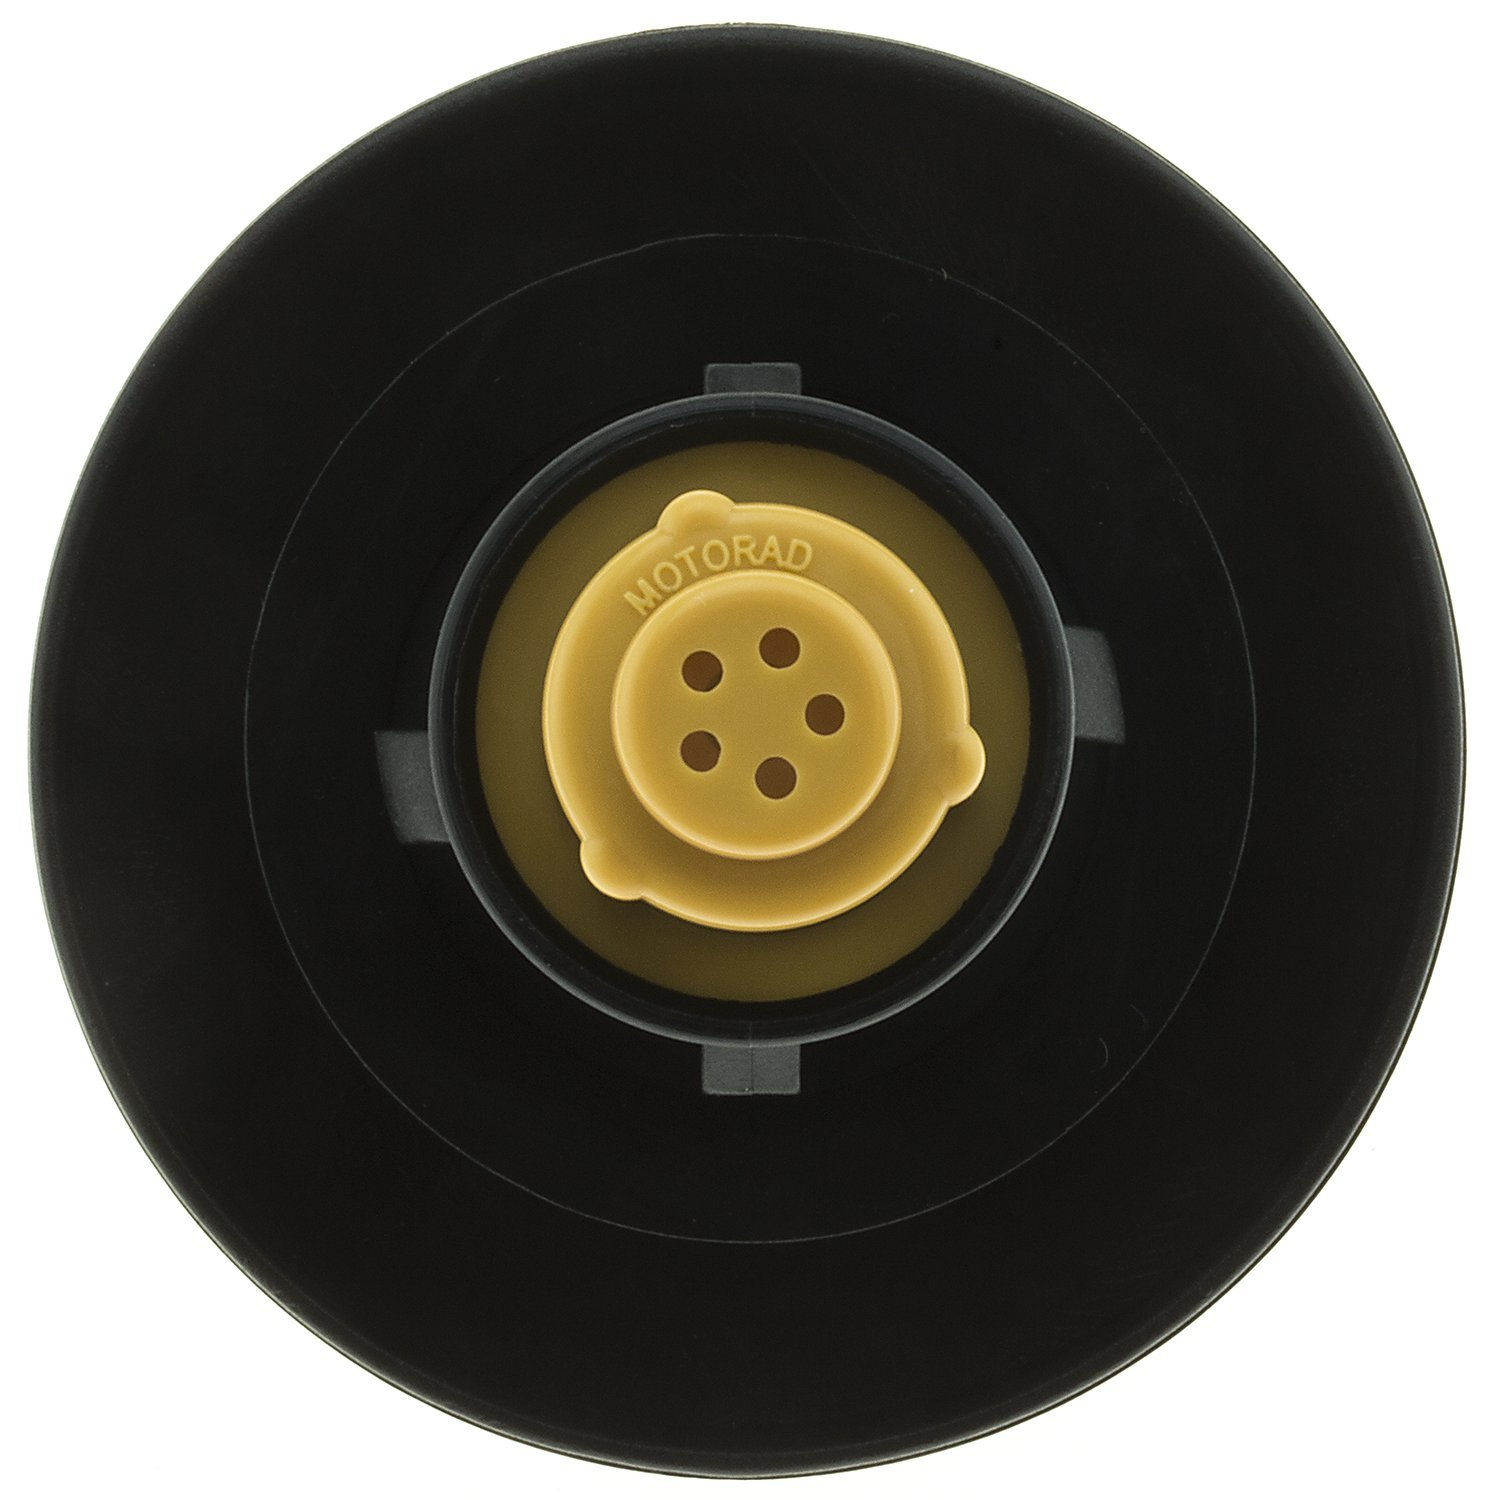 Motorad MGC-772 Locking Fuel Cap